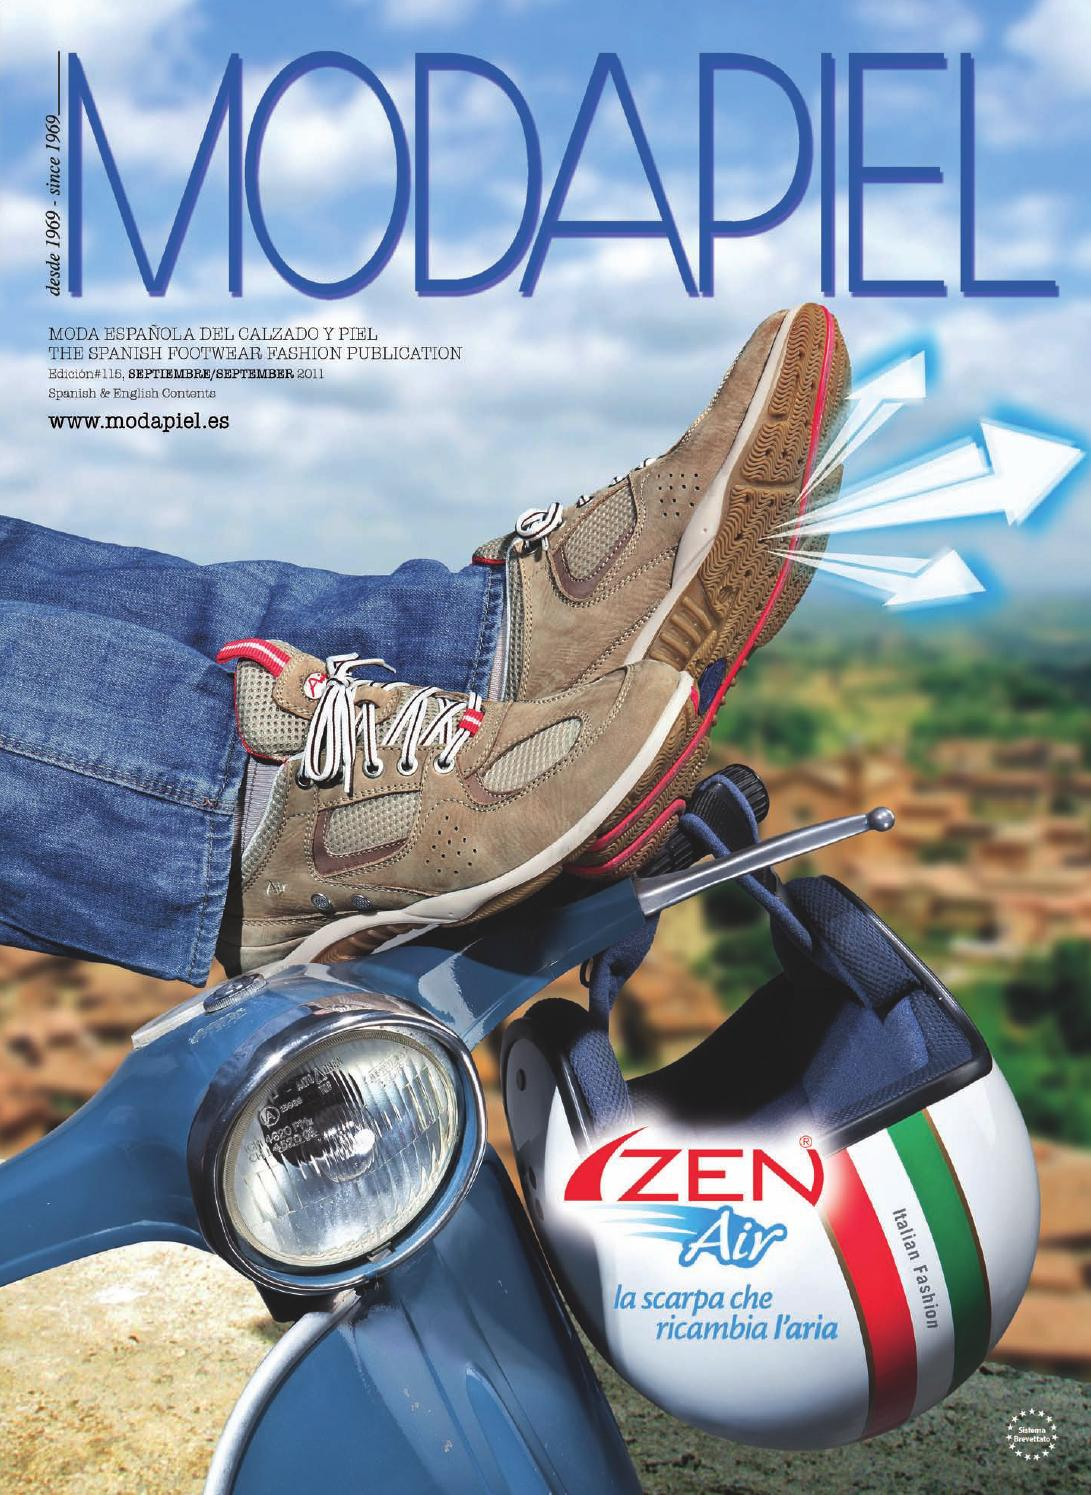 d6f4b877a Modapiel 115 Shoes and accessories magazine by Prensa Técnica S.L. - issuu